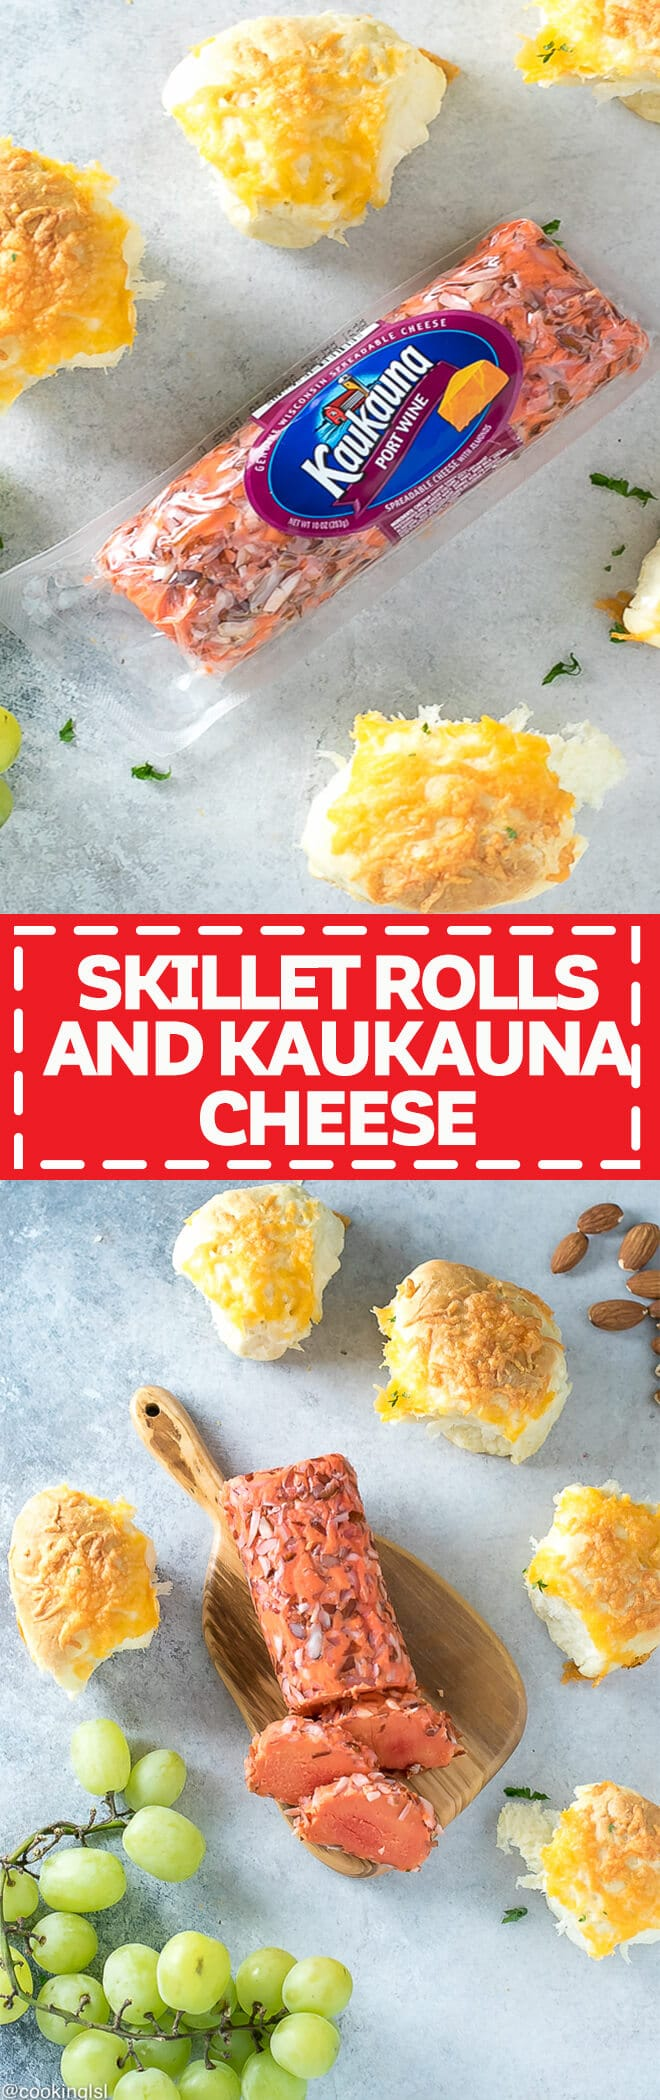 Cheesy Skillet Bread Rolls With Kaukauna Cheese - simple recipe, prefect for your holiday party.